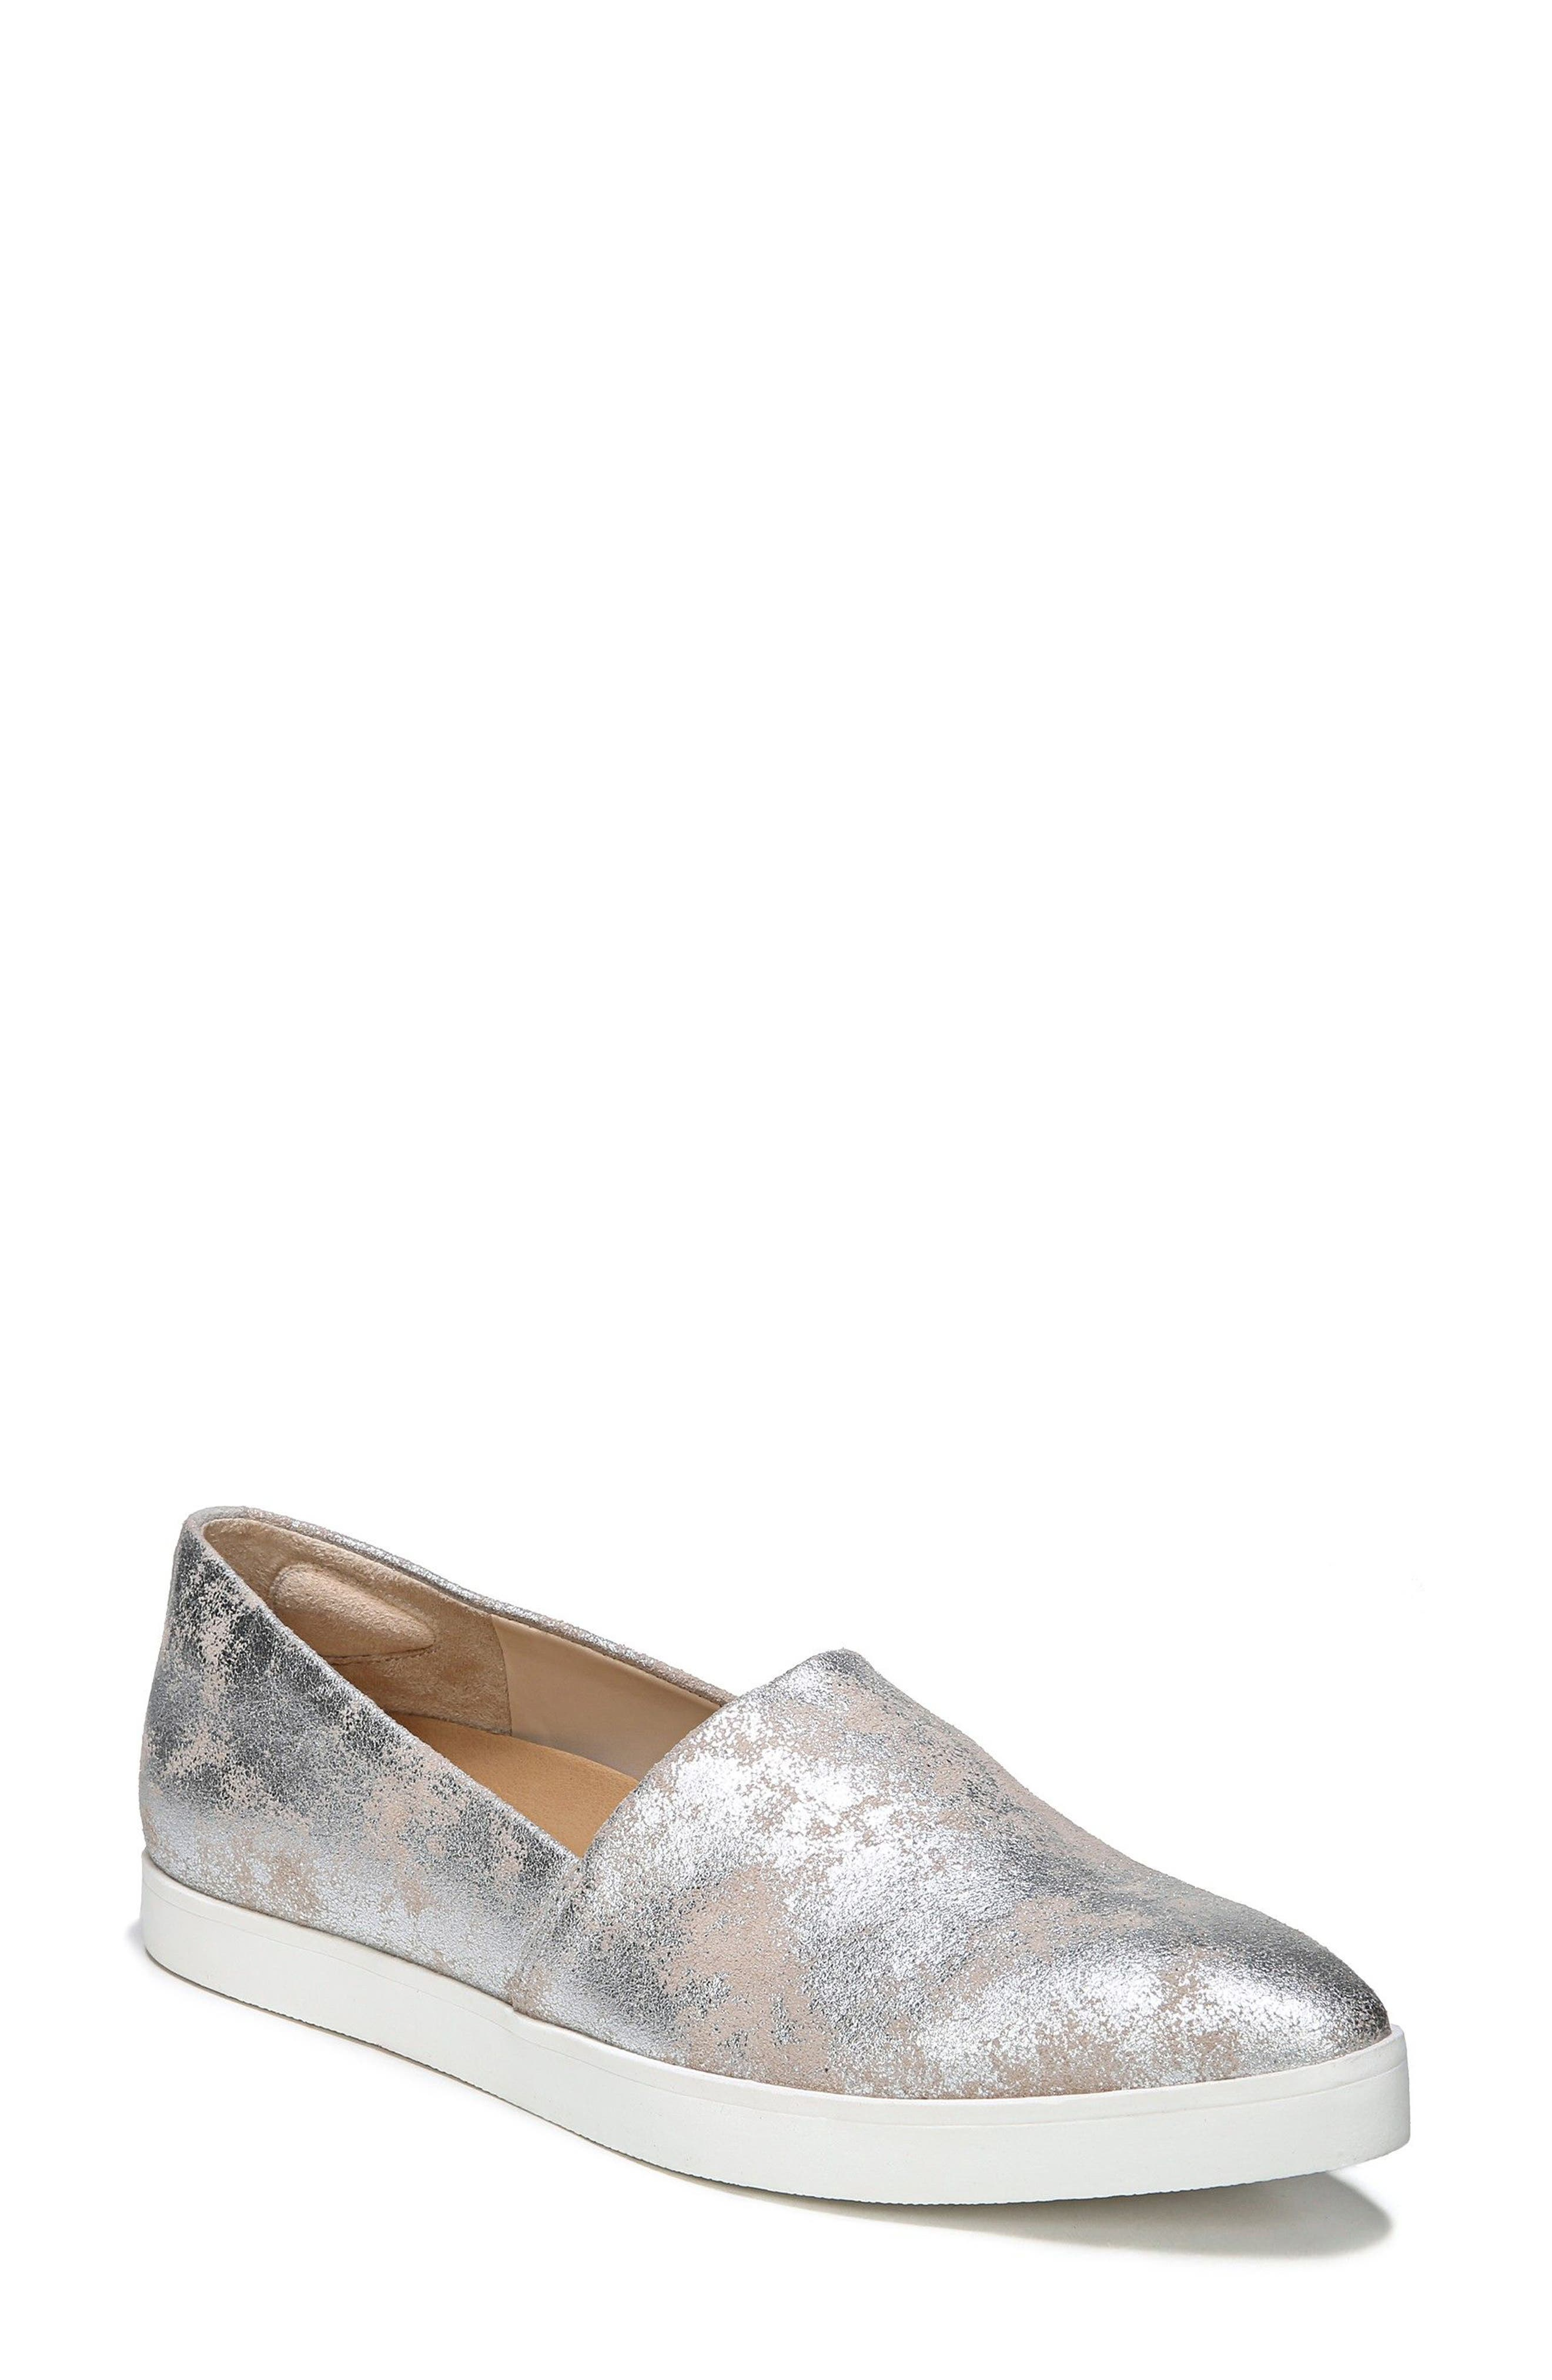 'Vienna' Slip-on Sneaker,                             Main thumbnail 1, color,                             Silver Leather